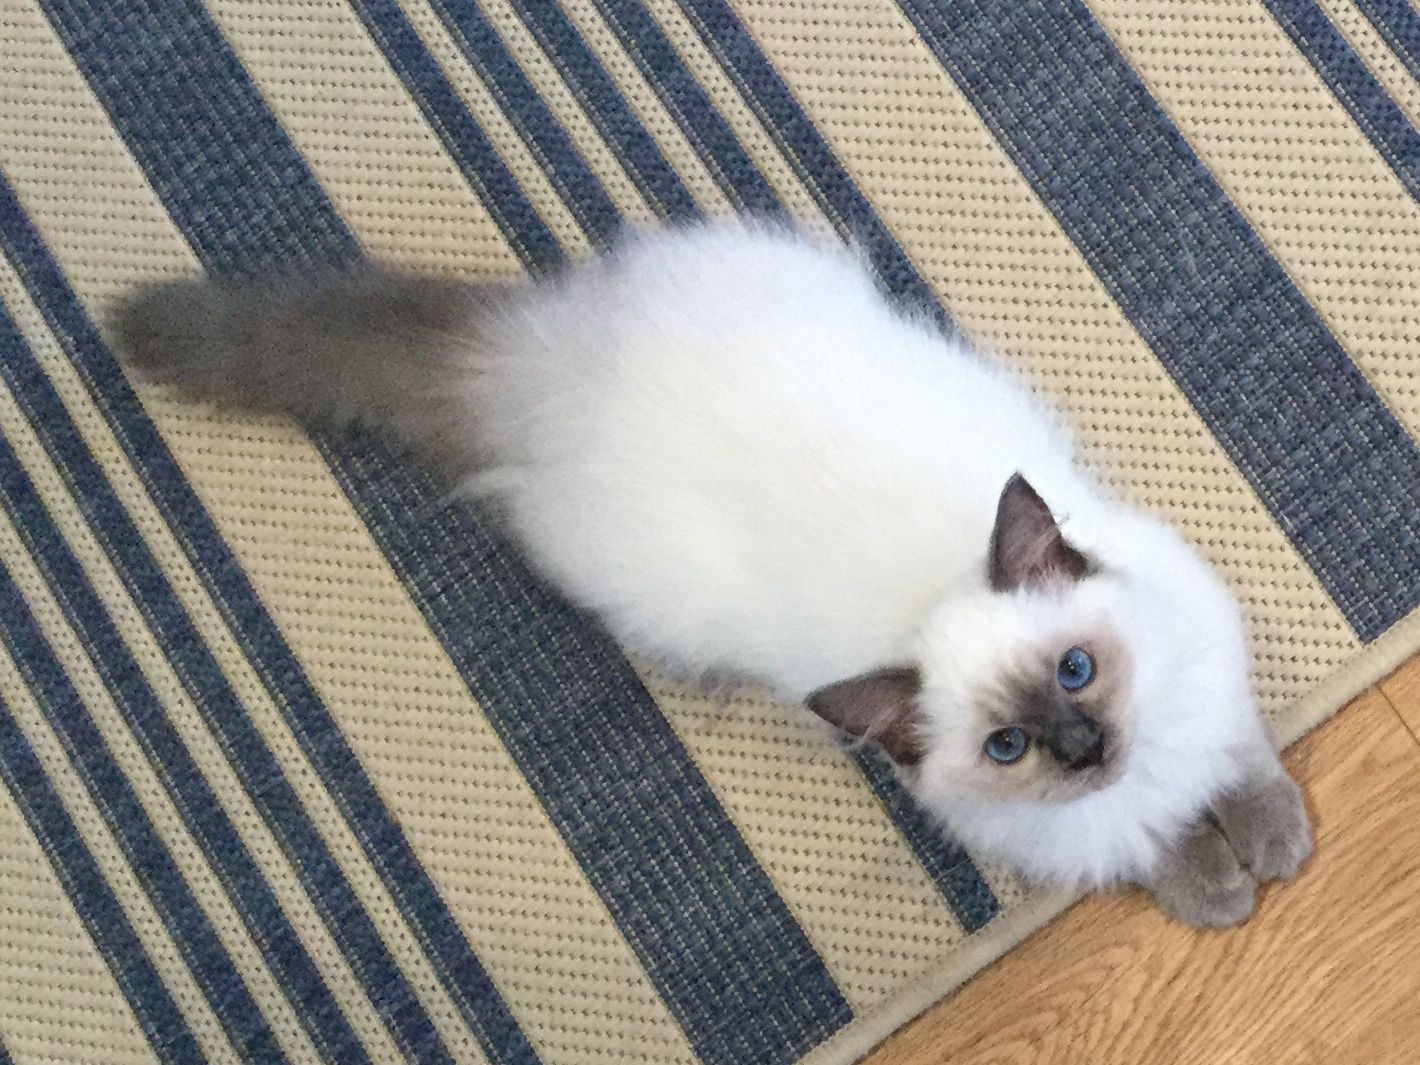 Kelsey My Sweet Blue Point Ragdoll Kitten At Around 20 Weeks Old She Is Getting Good At Playing Fetch Blue Point Ragdoll Ragdoll Kitten Kitten